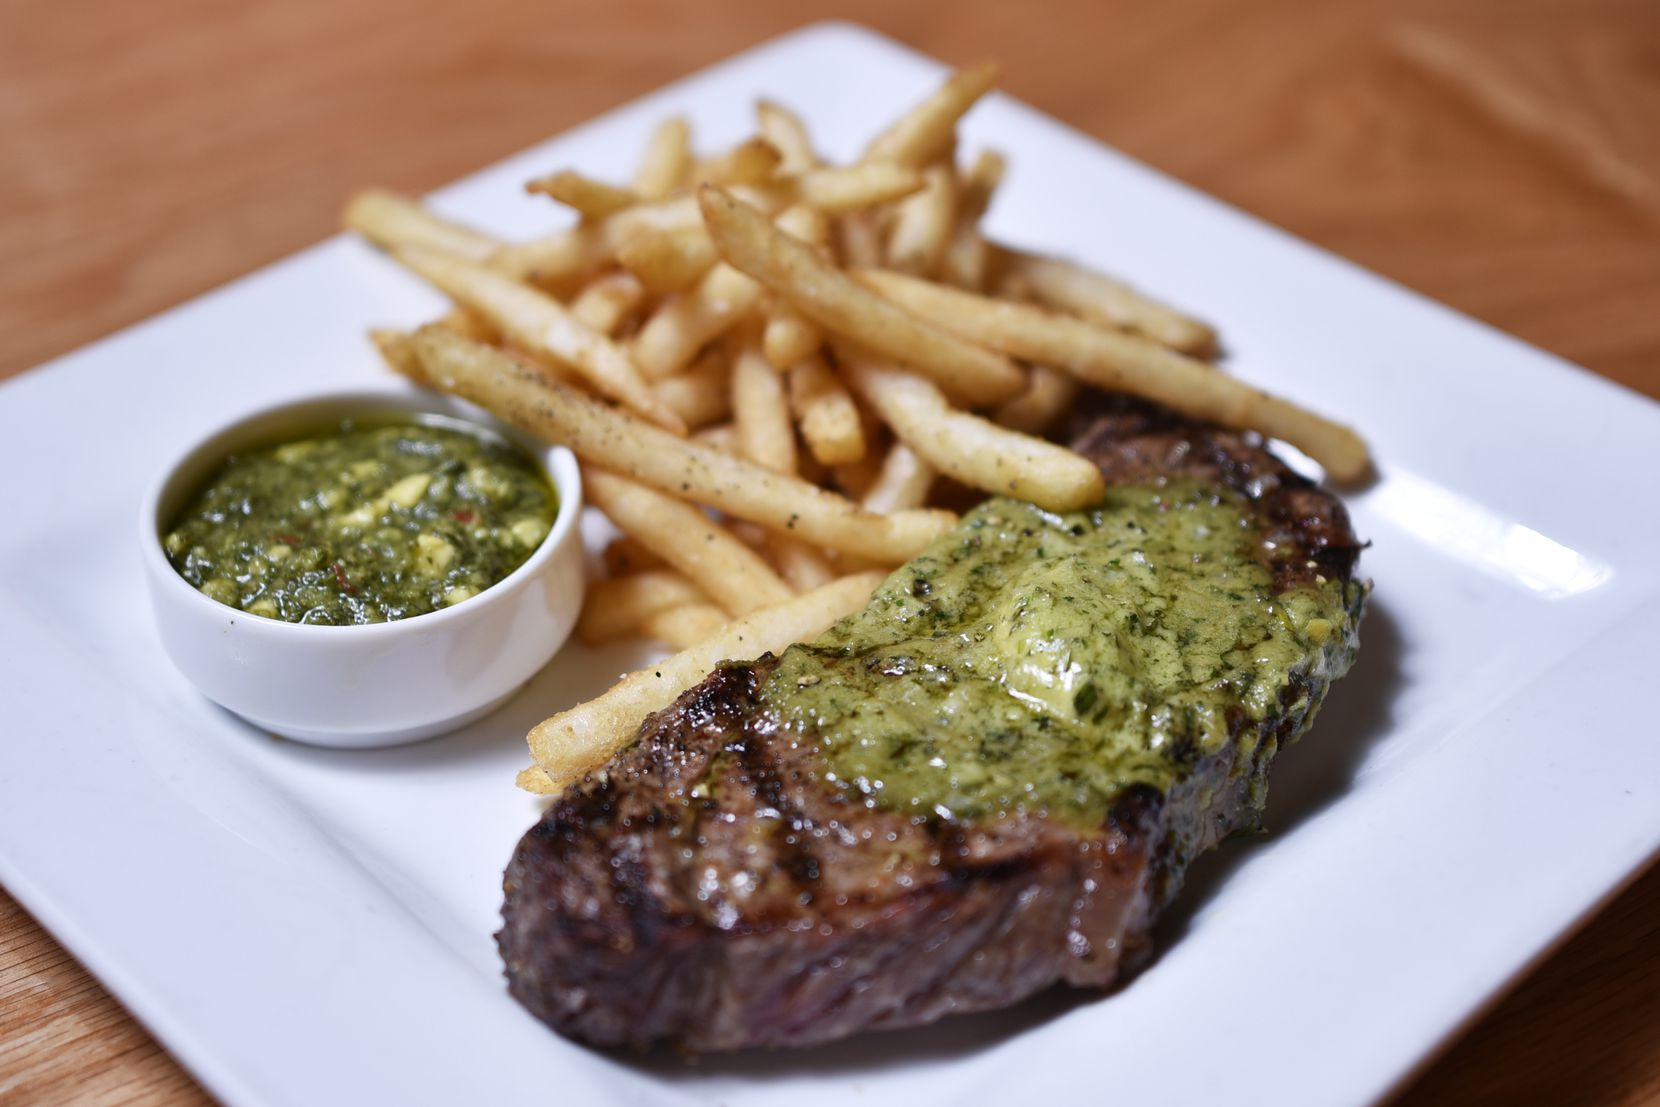 The $22 steak frites dish is a New York strip topped with avocado-herb butter and fries.